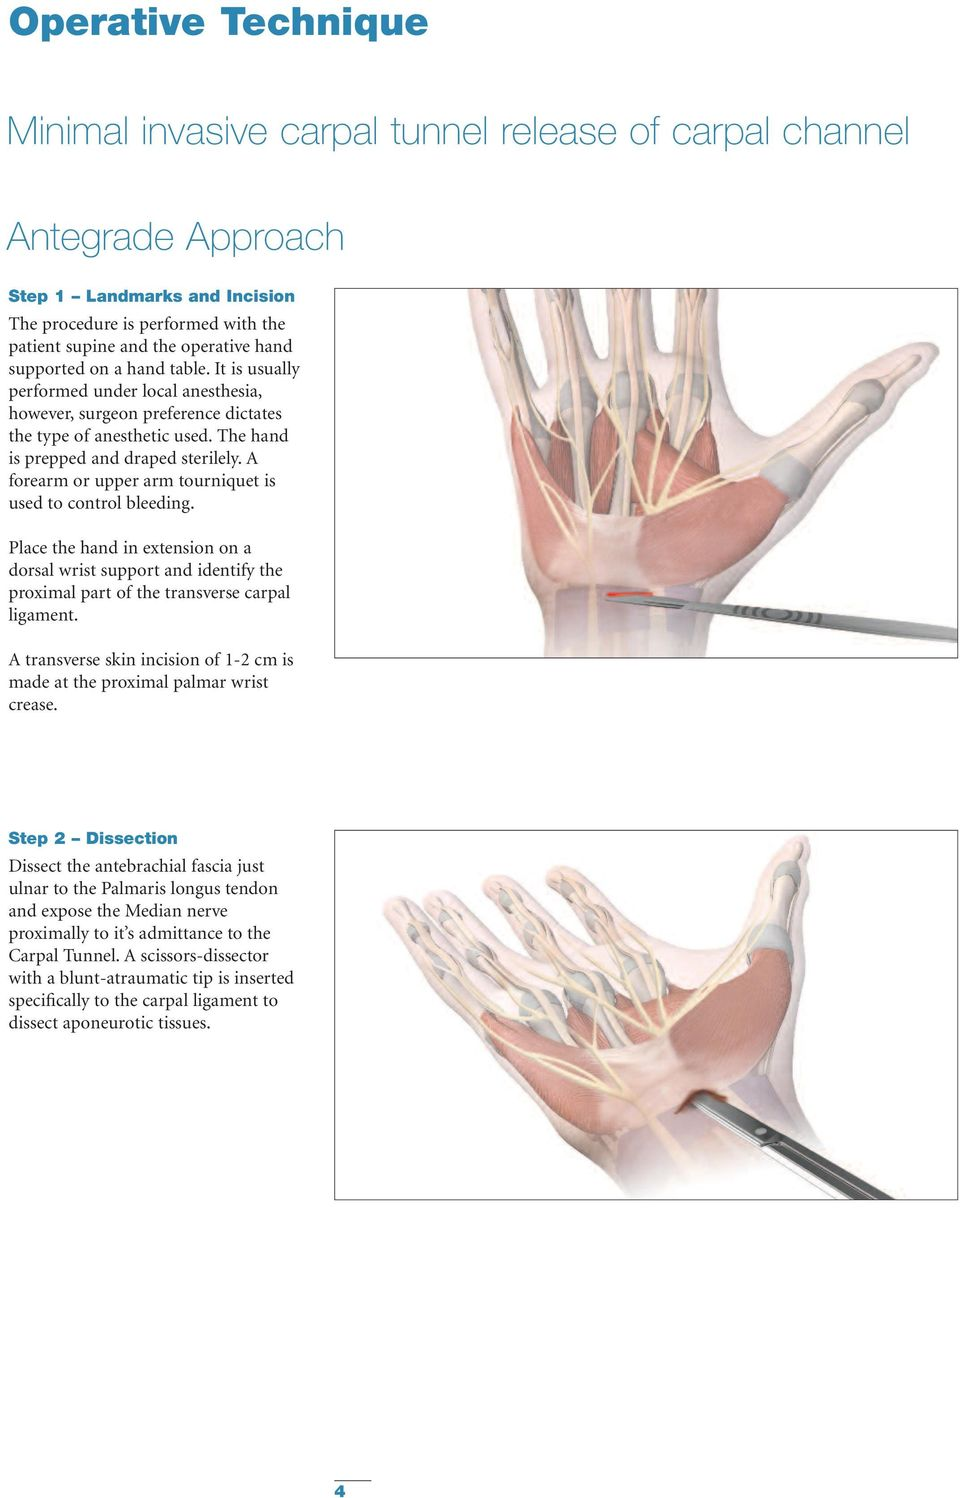 A forearm or upper arm tourniquet is used to control bleeding. Place the hand in extension on a dorsal wrist support and identify the proximal part of the transverse carpal ligament.